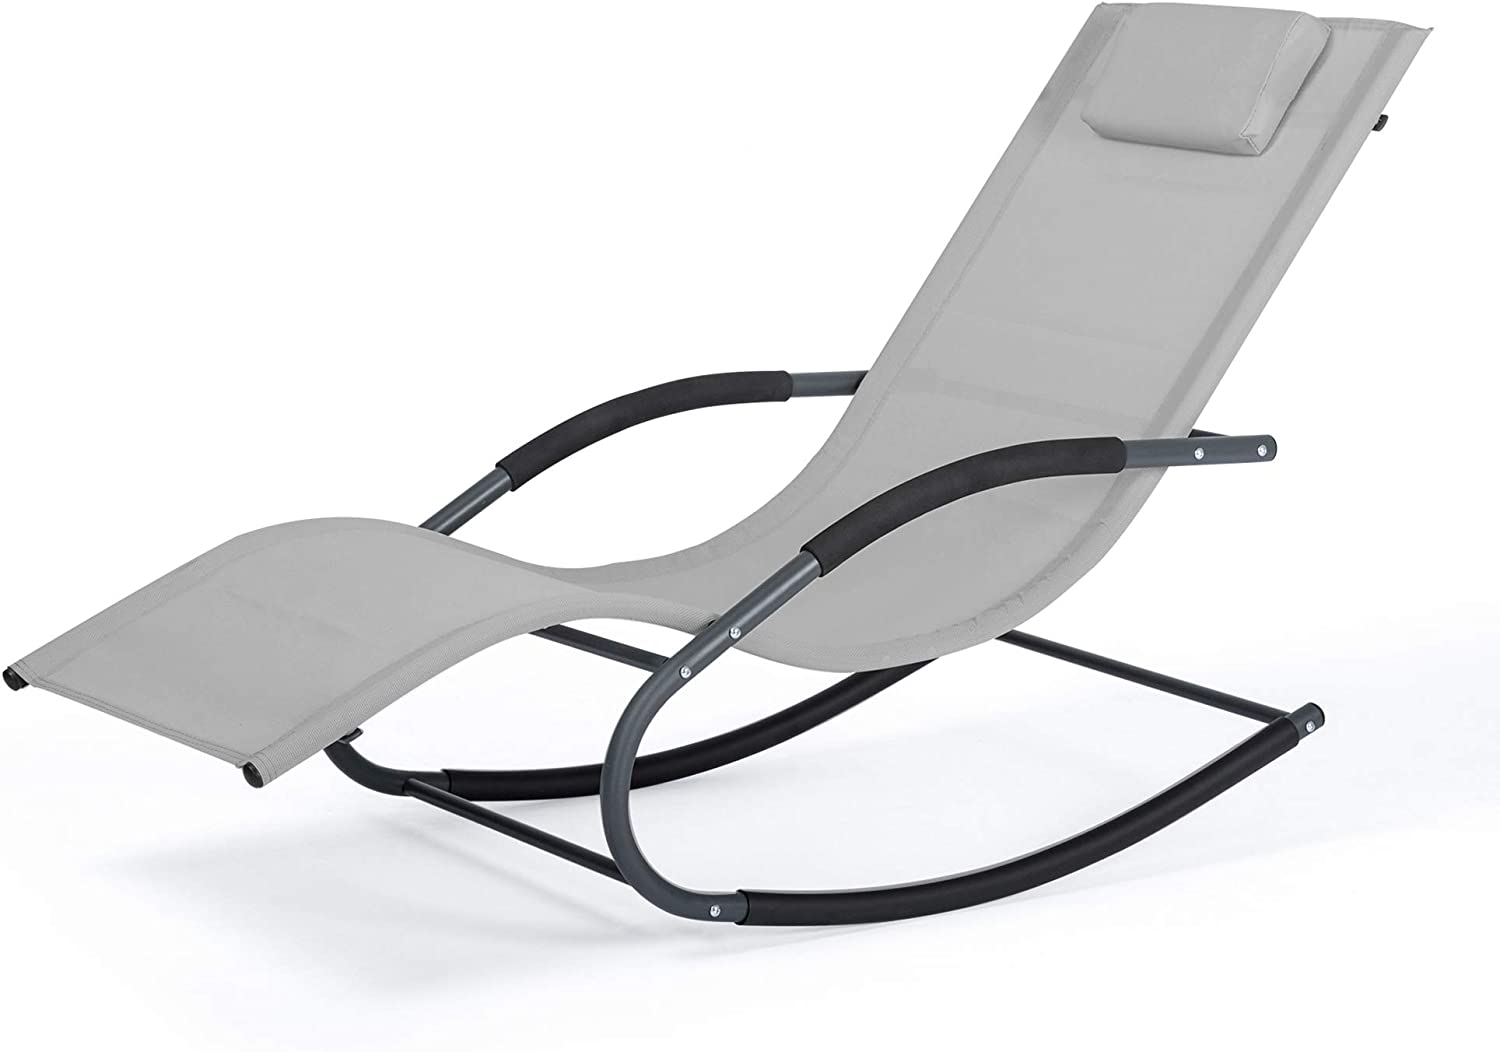 Mansion Home Chaise Lounge, Oversized Zero Gravity Chair for Patio & Lawn, Lounge Reclining Chairs for Outside Pool & Beach, Outdoor Chaise Recliner, Light Gray